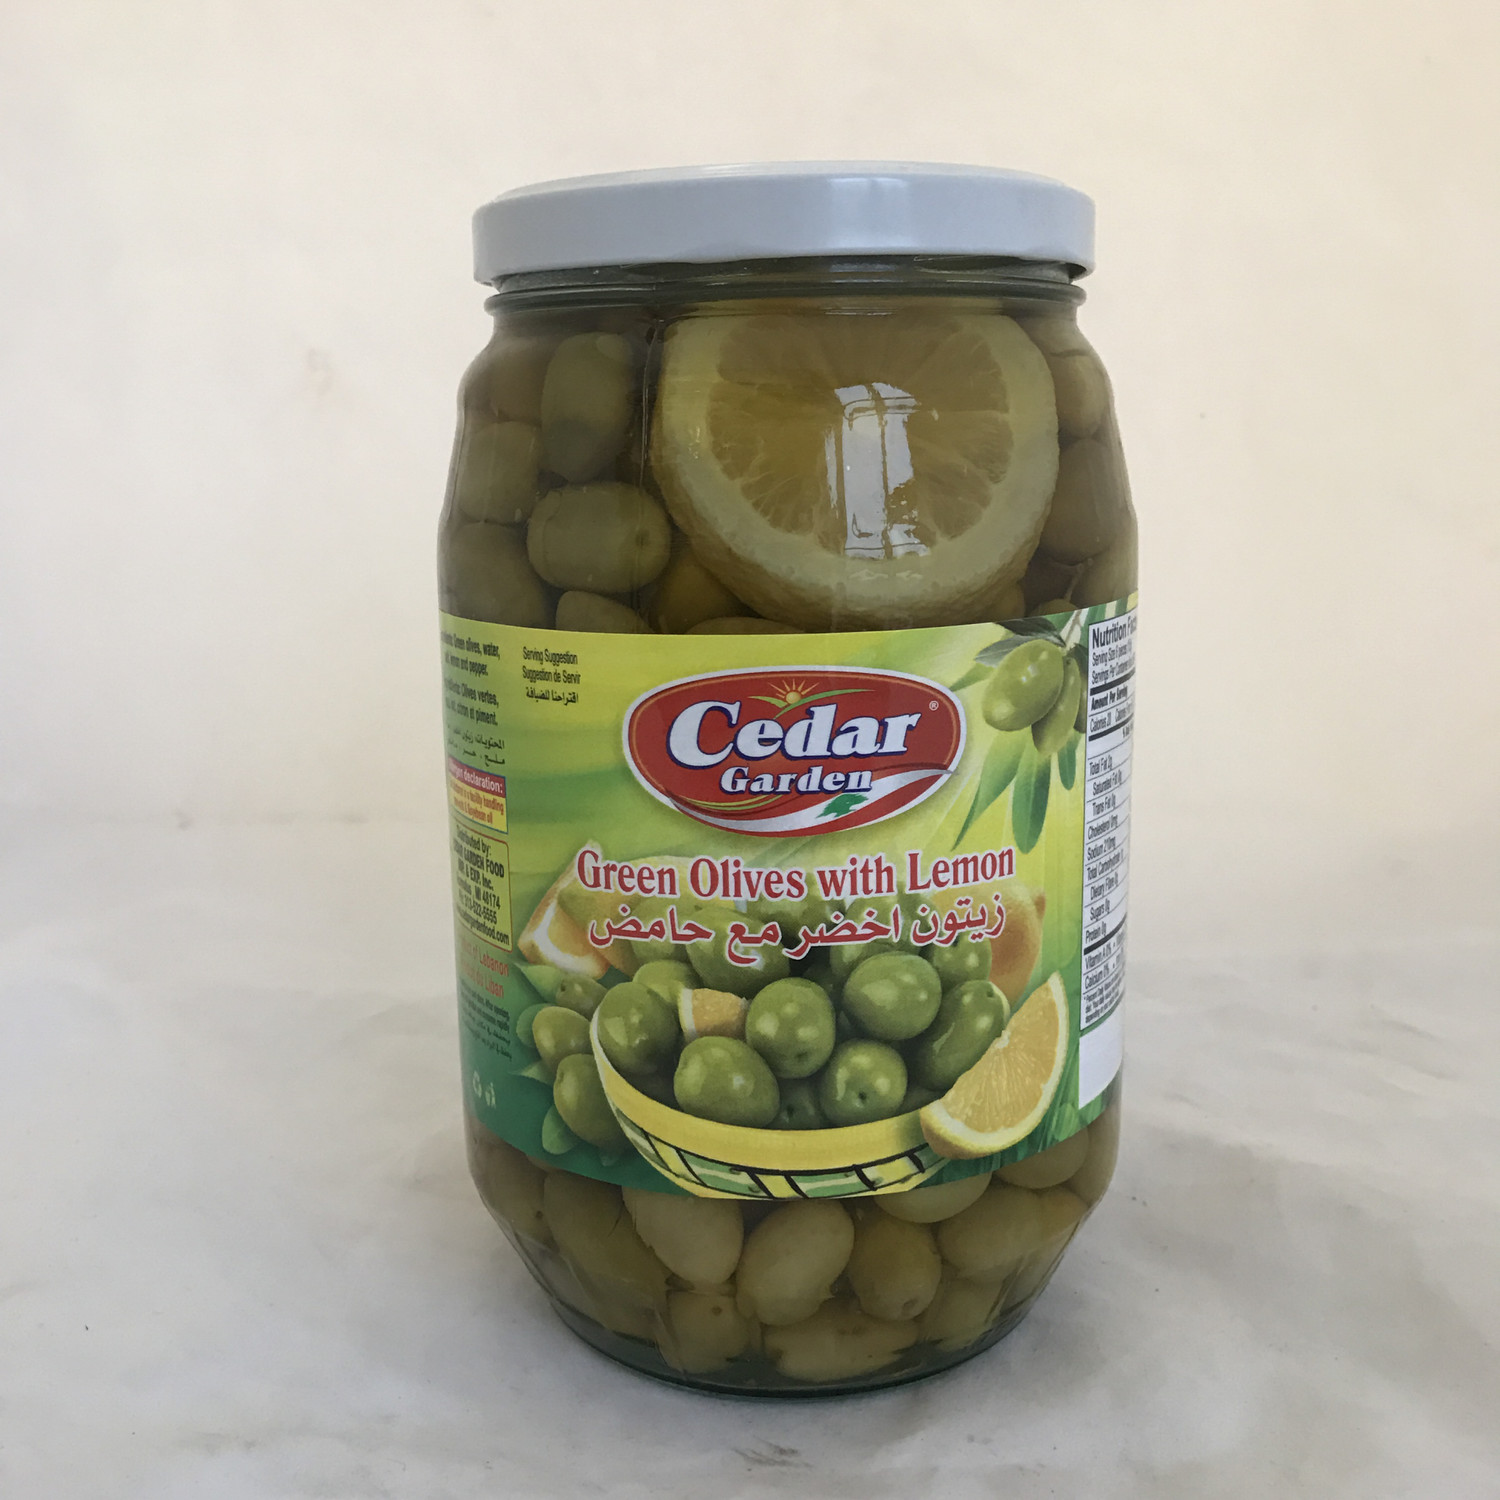 cedar garden green olive with lemon 6x1700g